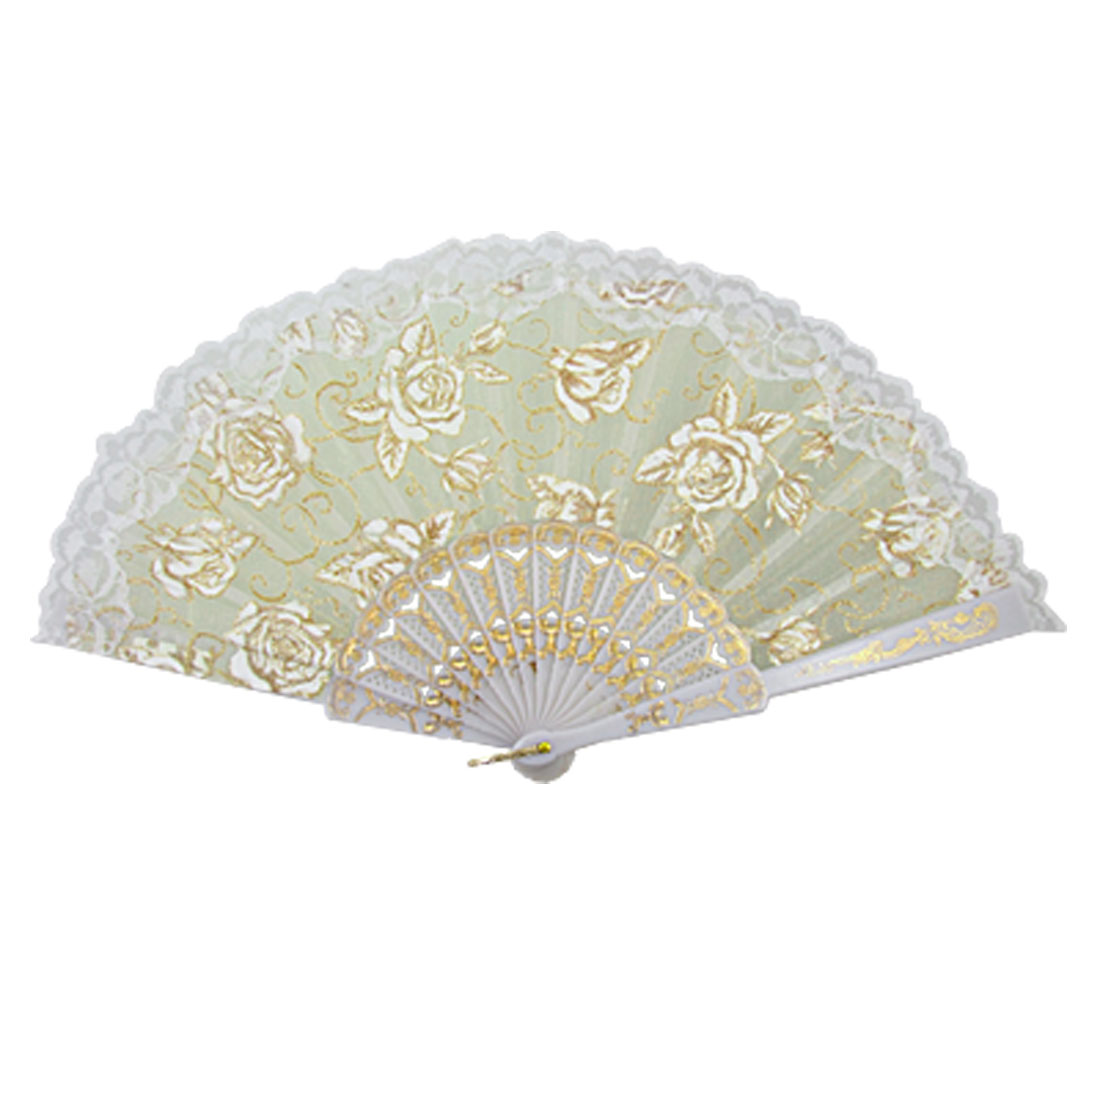 White Plastic Ribs Peony Print Dance Folding Hand Fan